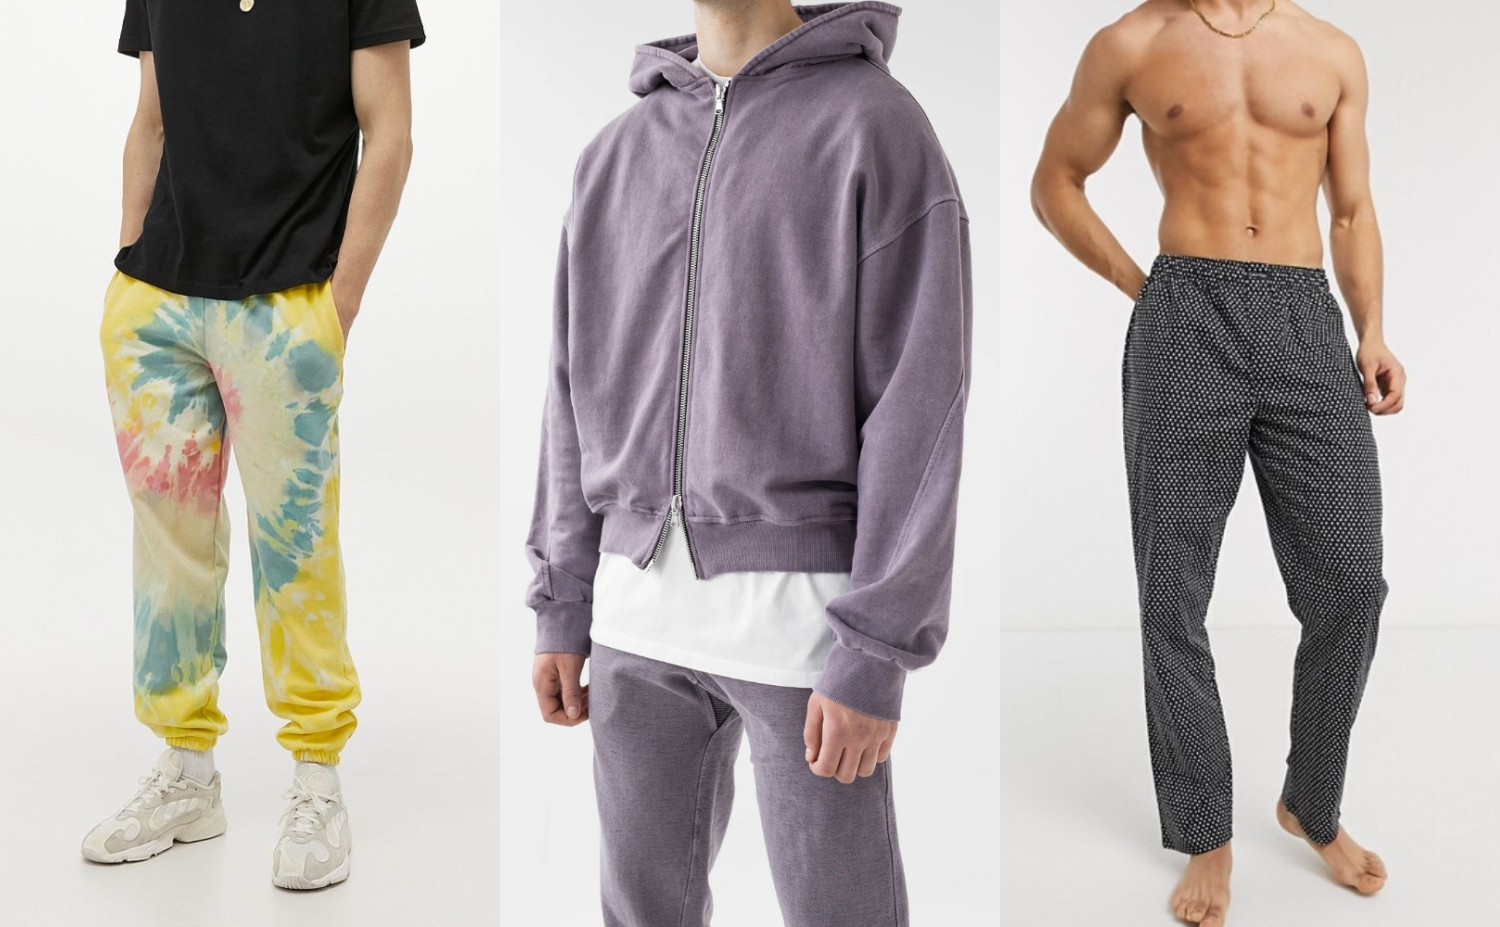 PAUSE Editor Picks: Rhys Marcus Jay Spotlights His Cosy Must-Haves